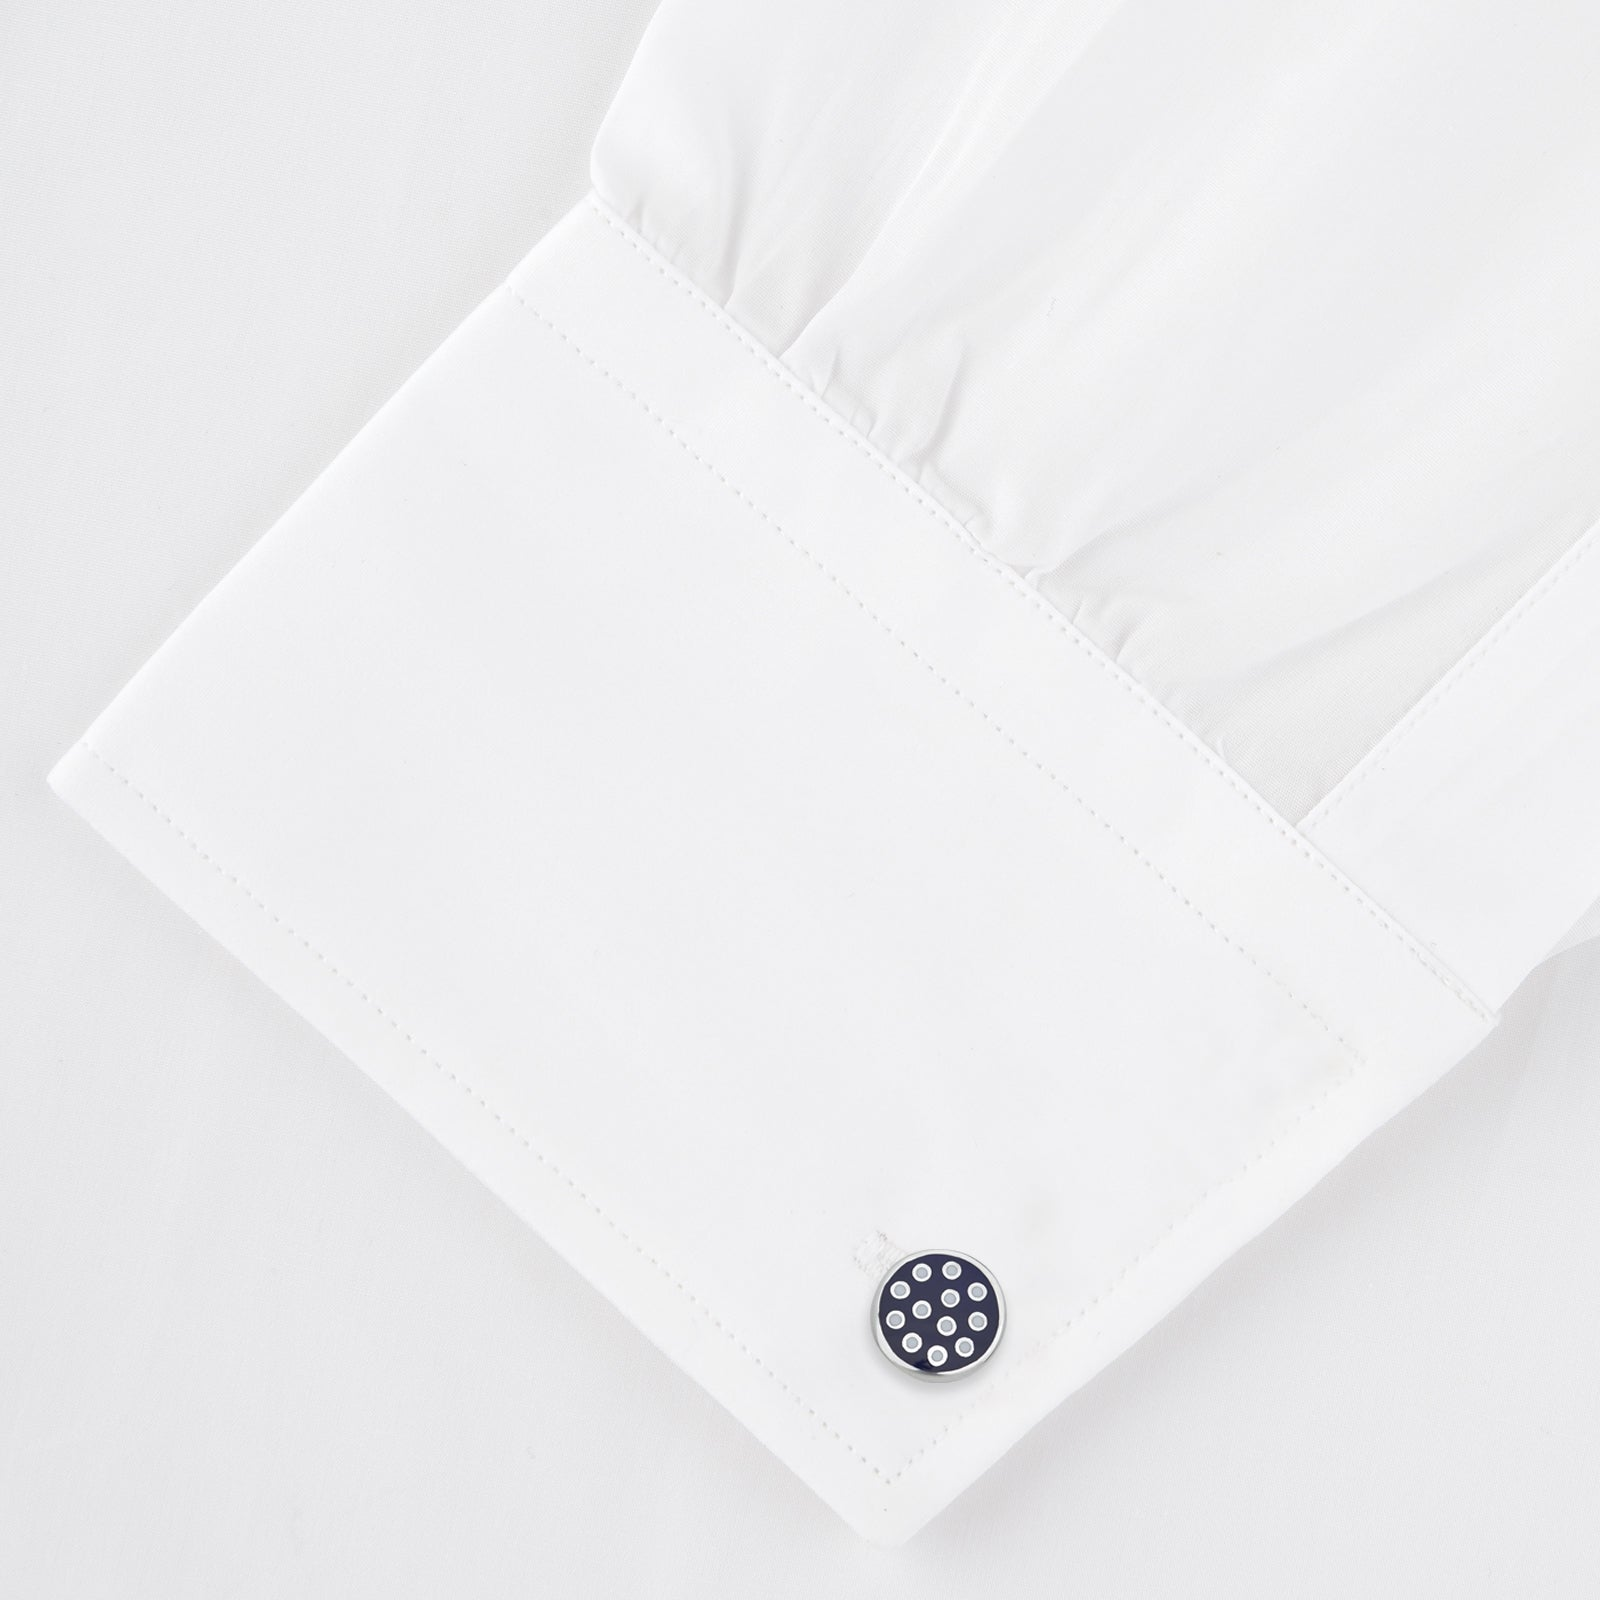 Spotted Navy and White Sterling Silver Enamelled Cufflinks